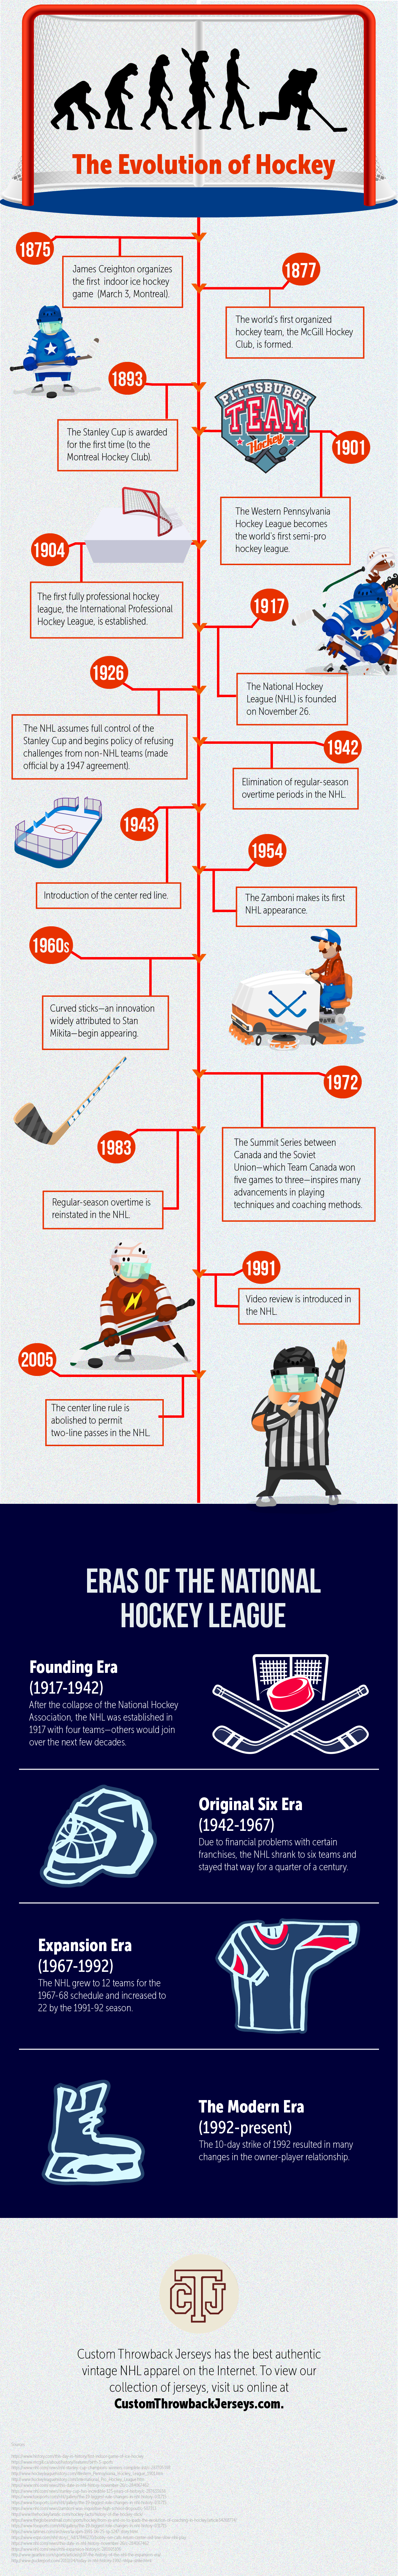 The Evolution Of Hockey Infographic